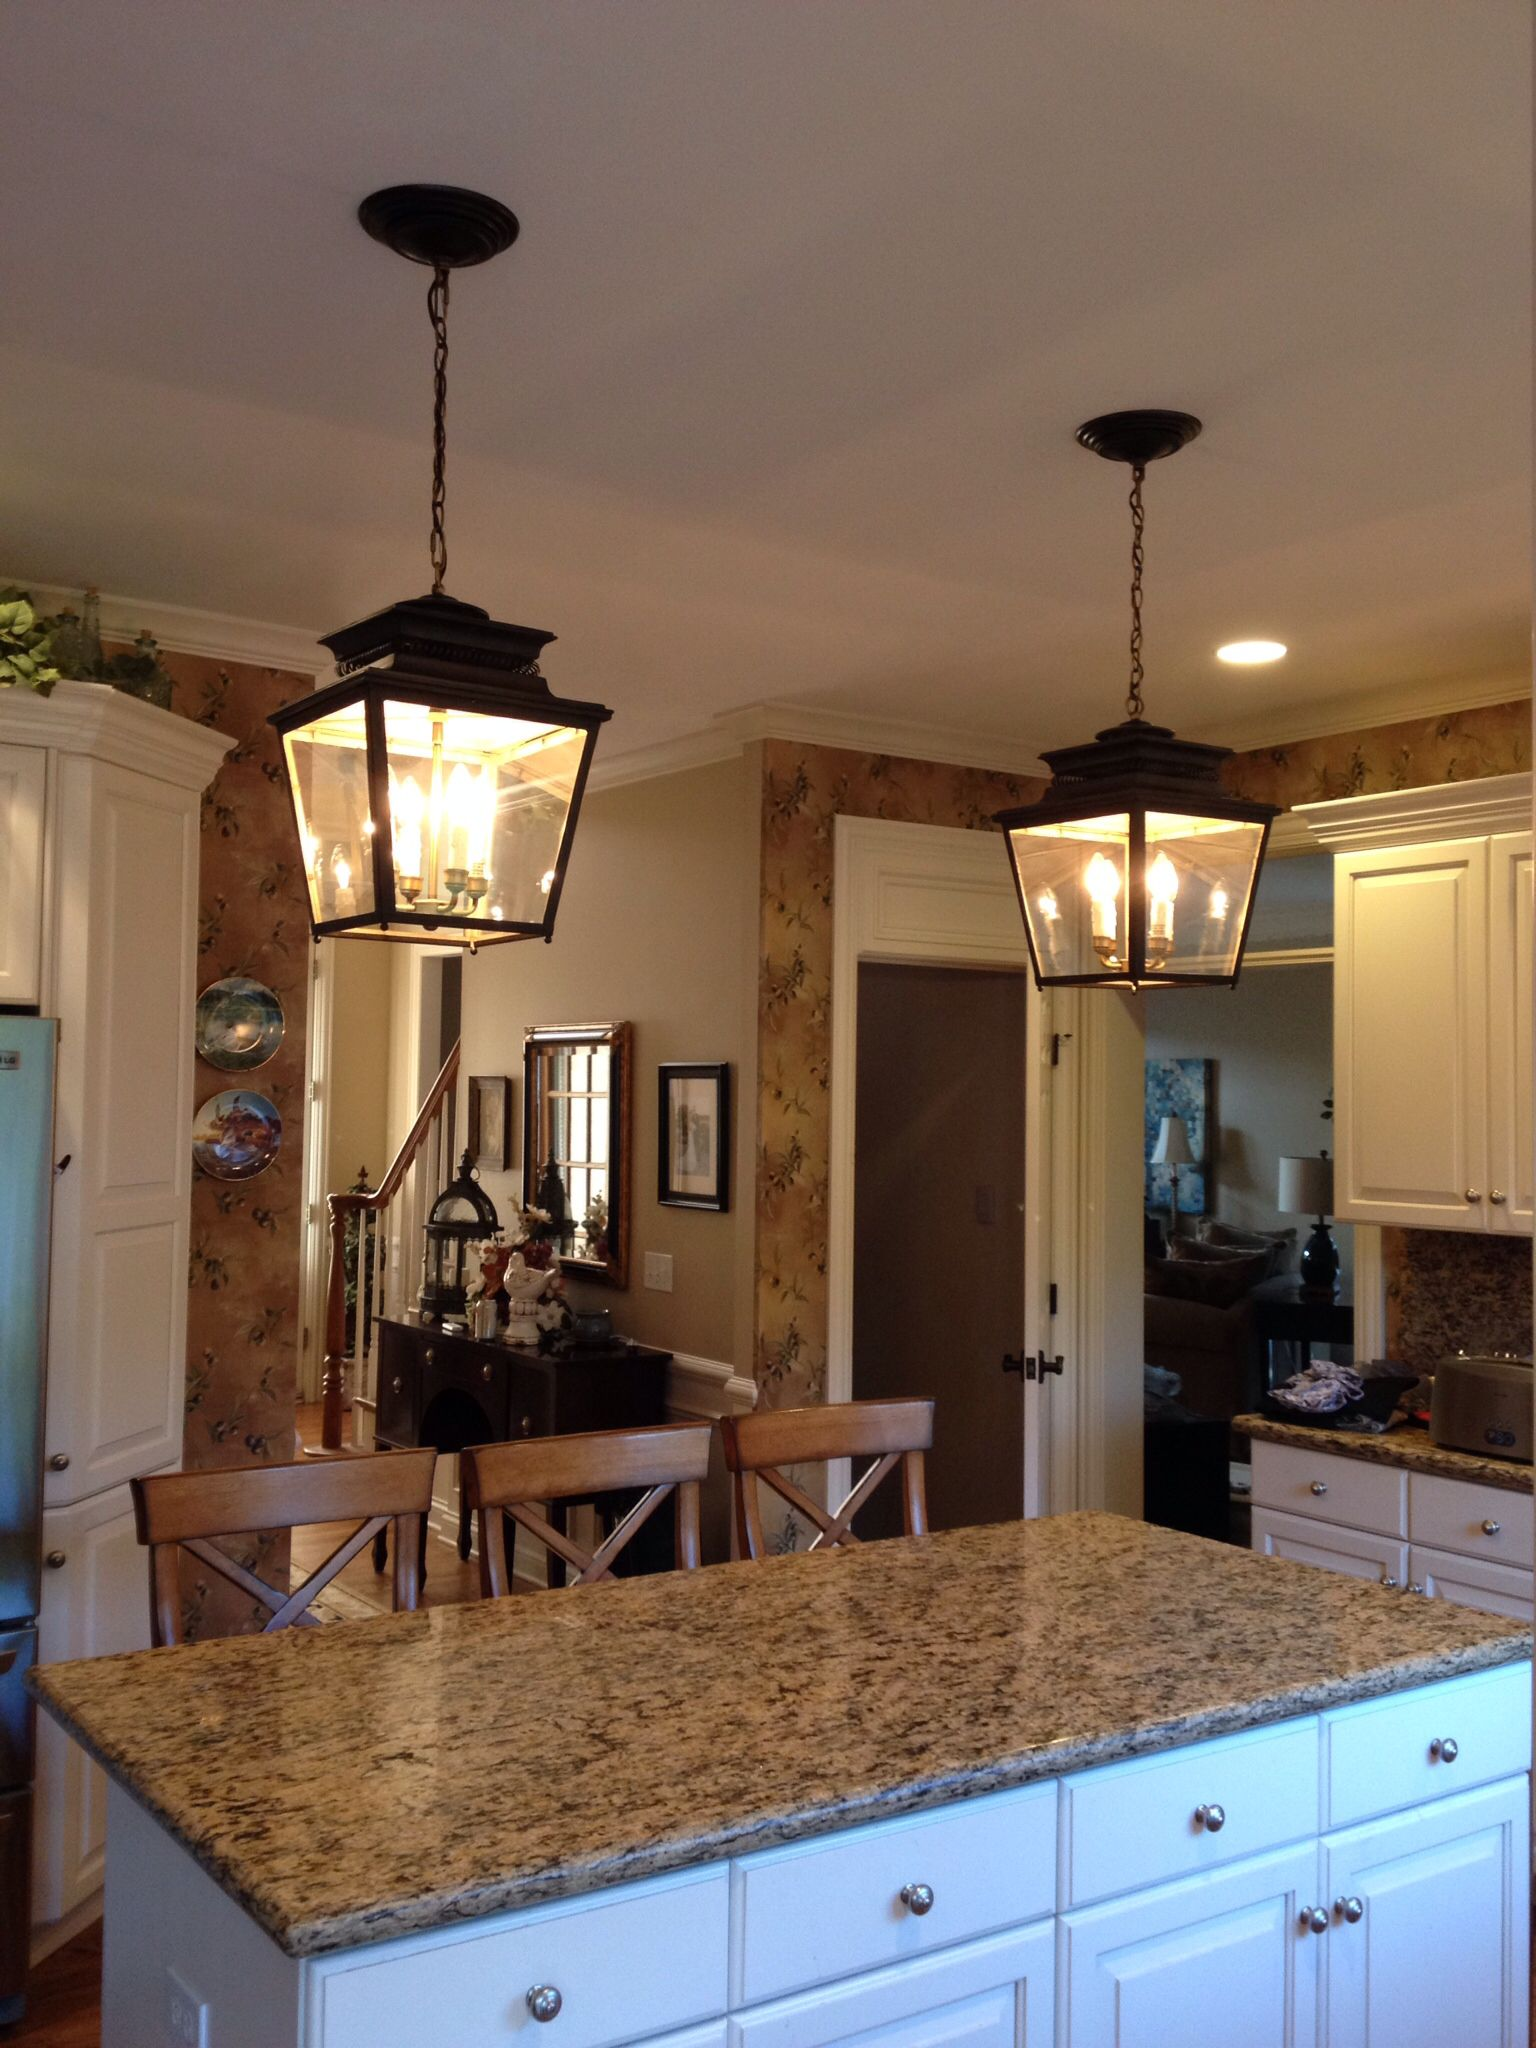 Superb Lantern Lights   Ballard Designs Piedmont Lanterns Over My Island. Part 12